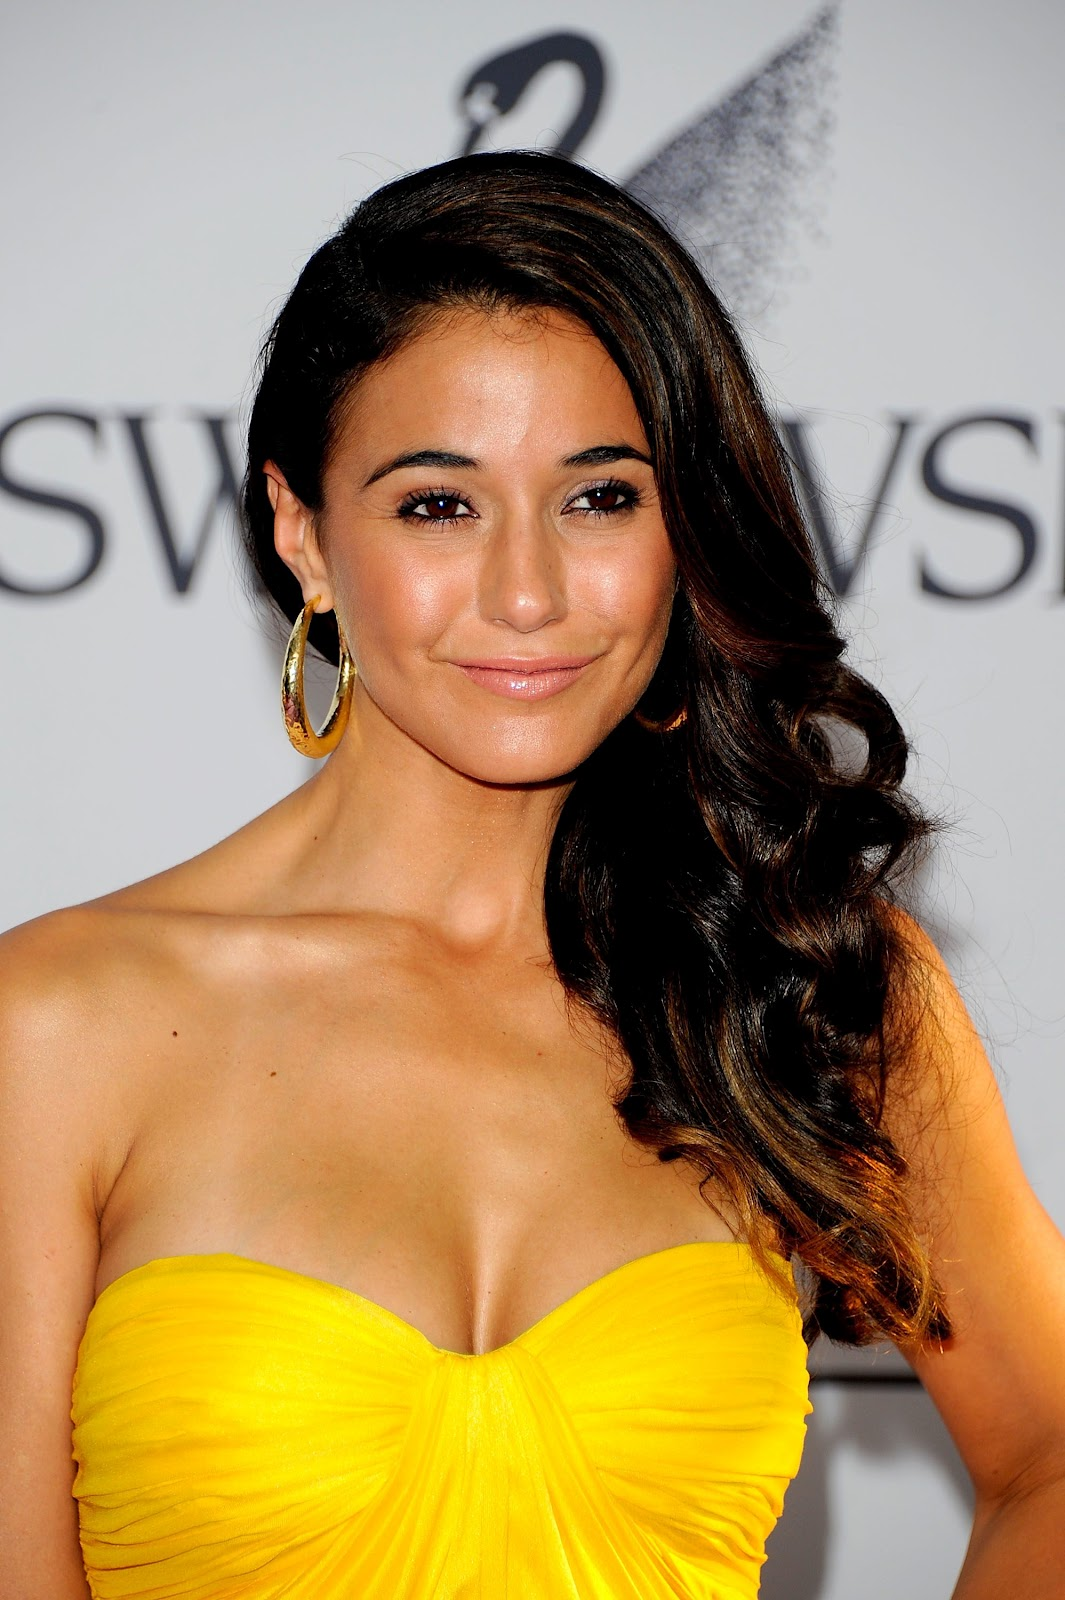 Emmanuelle Chriqui 2011 Cfda Fashion Awards In Nyc (06062011)